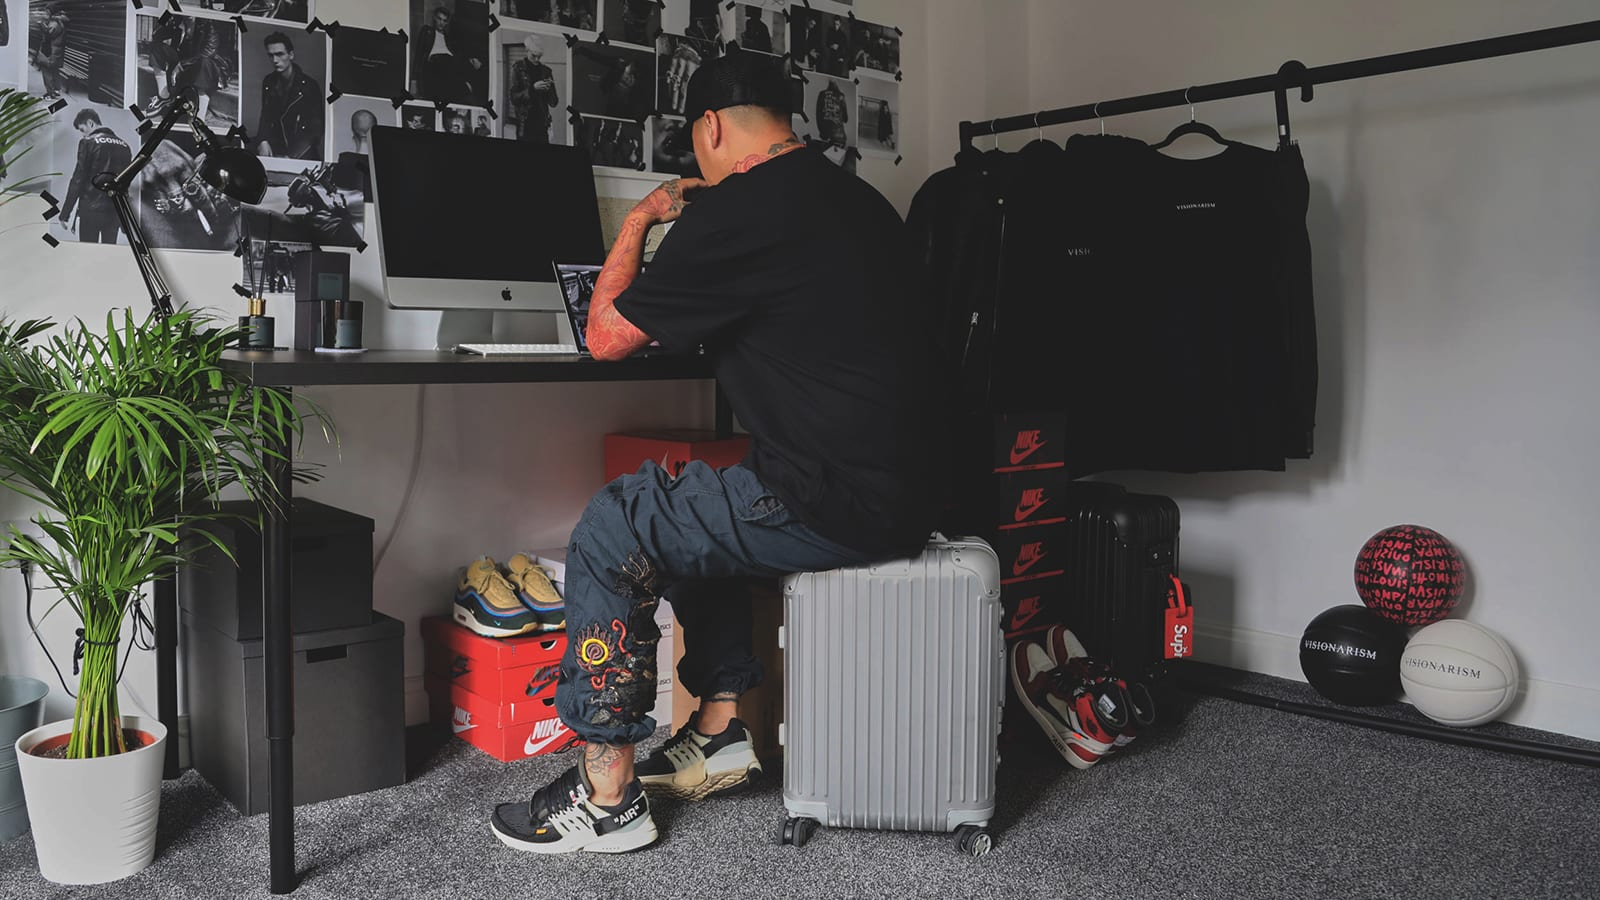 Ste Wing of Visionarism sitting on top of Rimowa travel case in home office with sneakers including Nike x Off-White Presto and AJ1 and Sean Wotherspoon's AM97/1